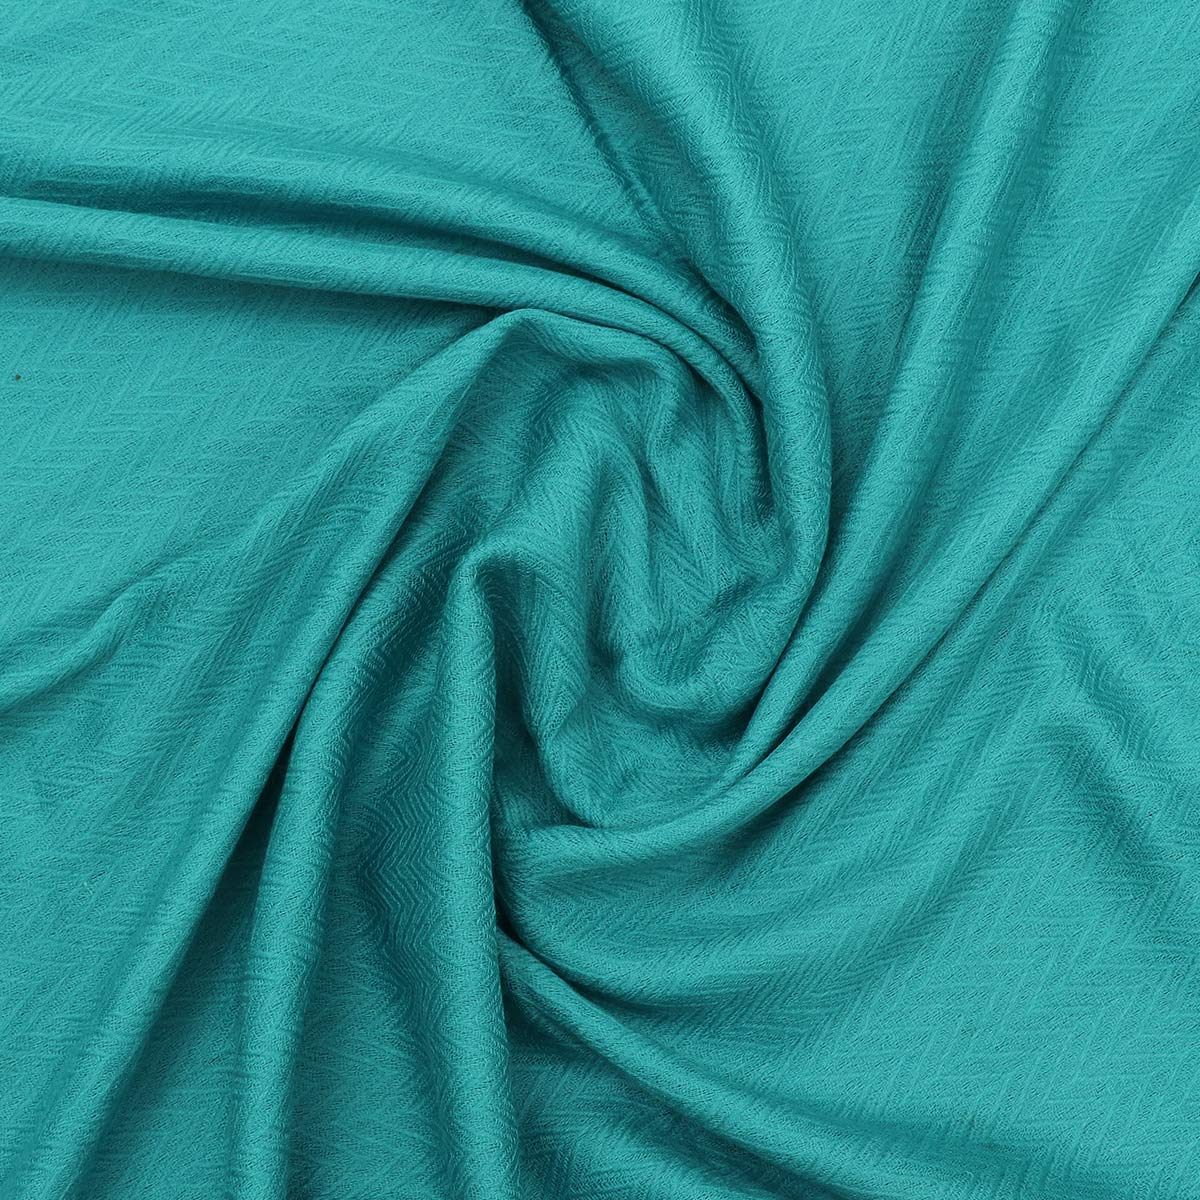 Pure Pashmina Stole Sea Green with Simple design for Rs.Rs. 3600.00 | Stole by Prashanti Sarees